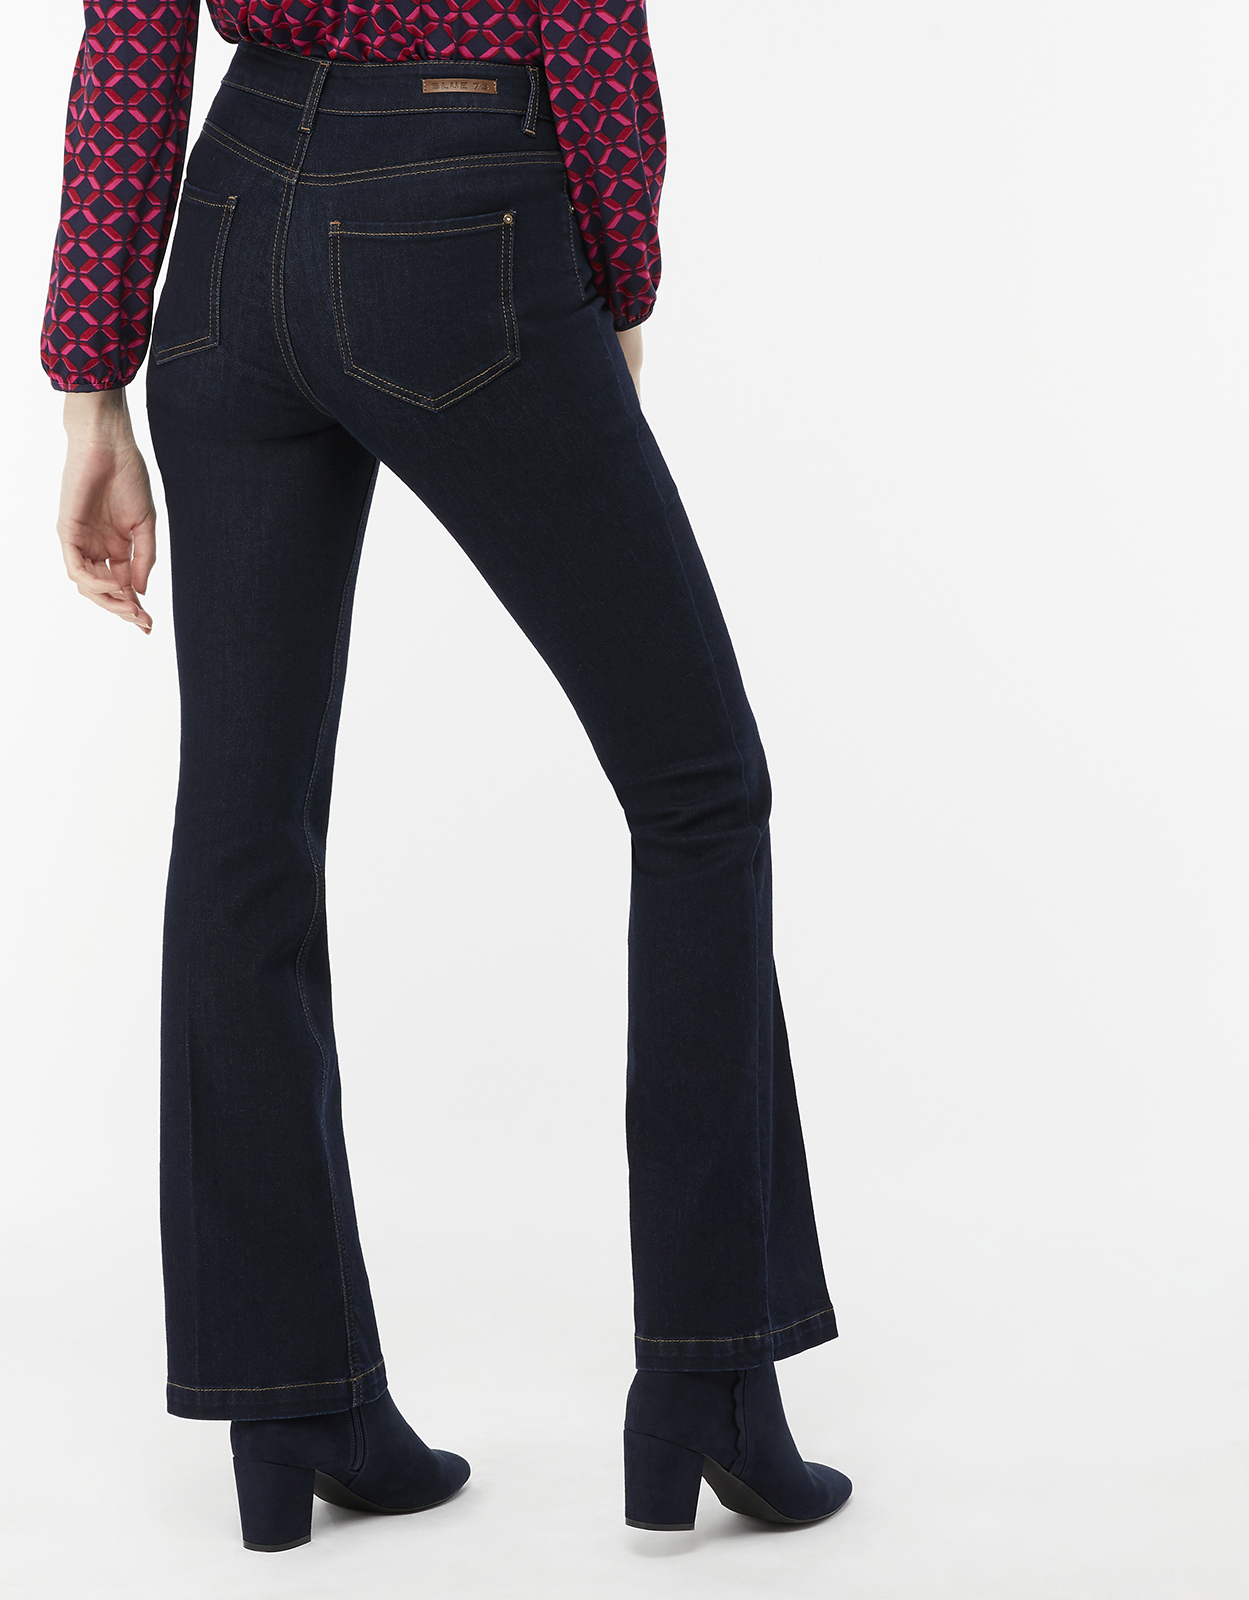 Monsoon Mavie Regular Length Jeans